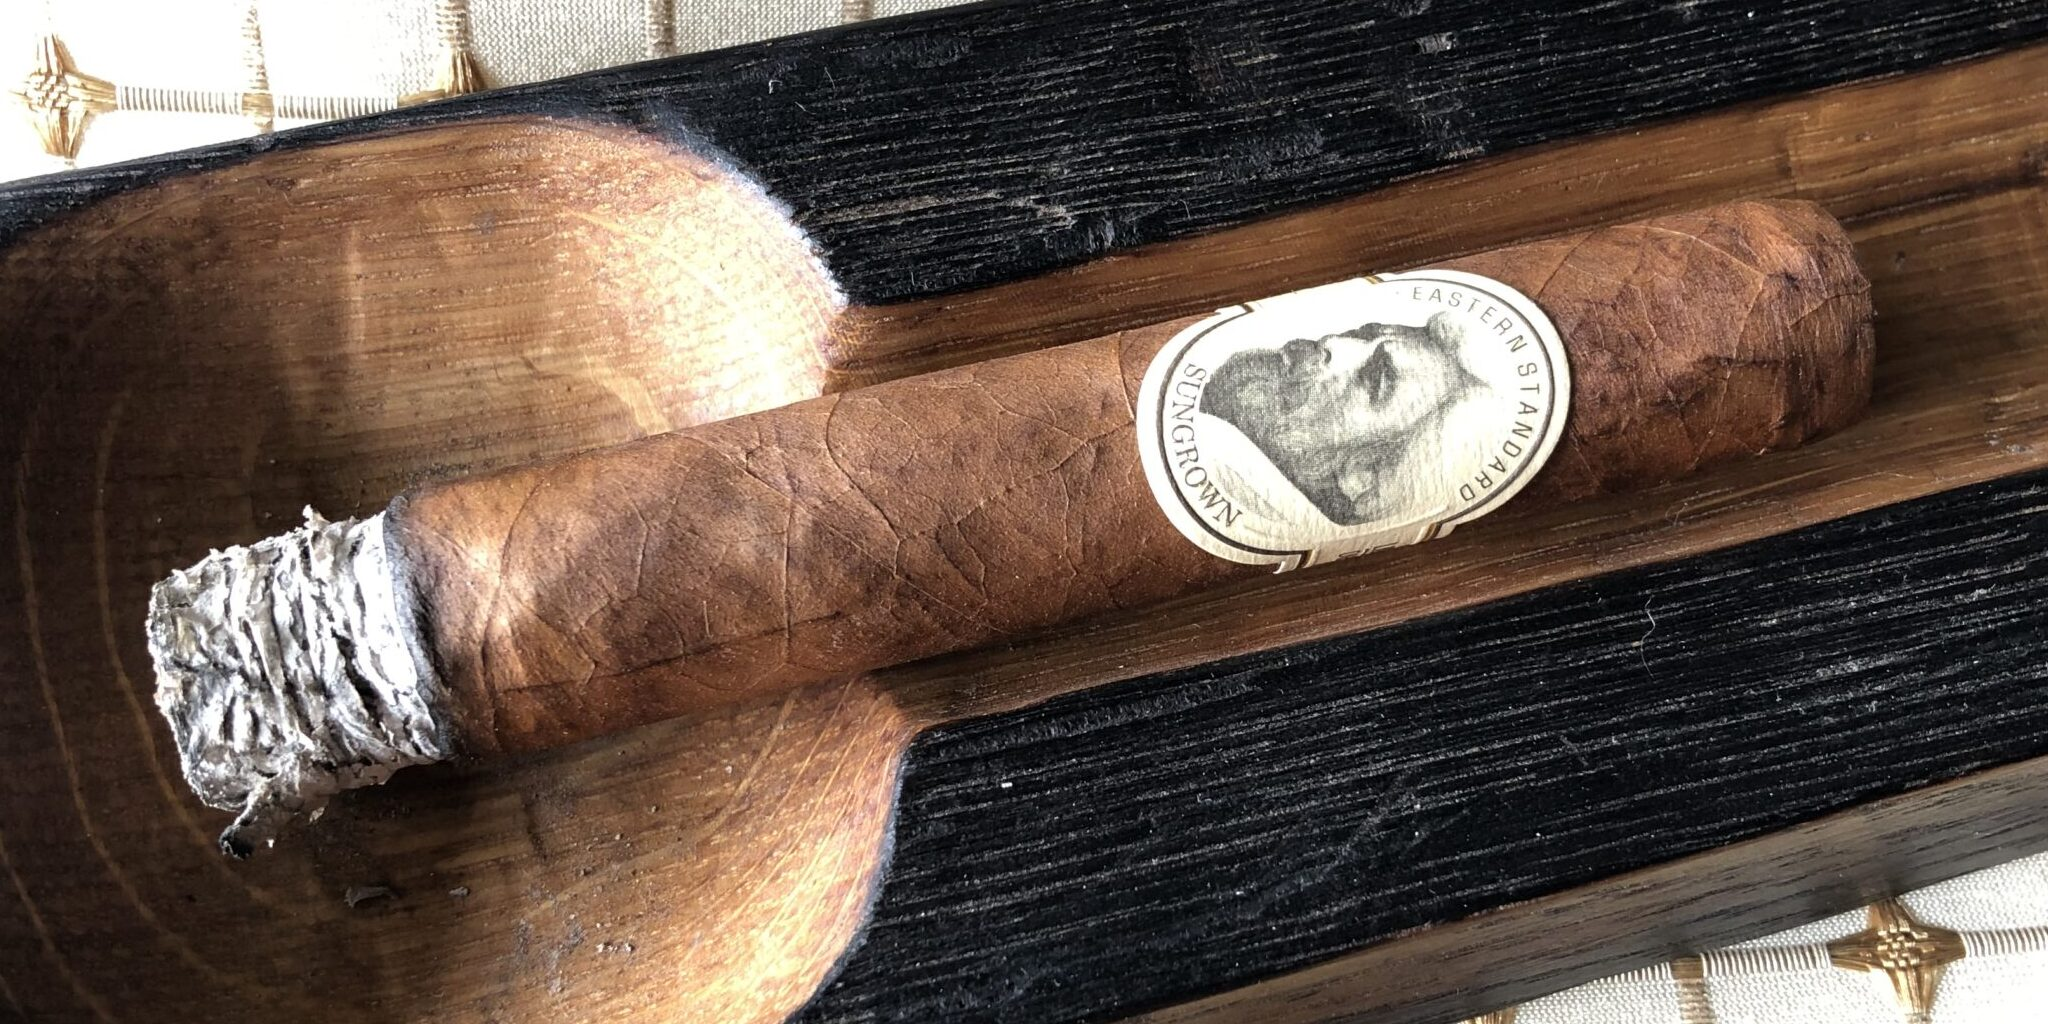 You are currently viewing Caldwell Eastern Standard Sungrown Corretto Robusto Cigar Review